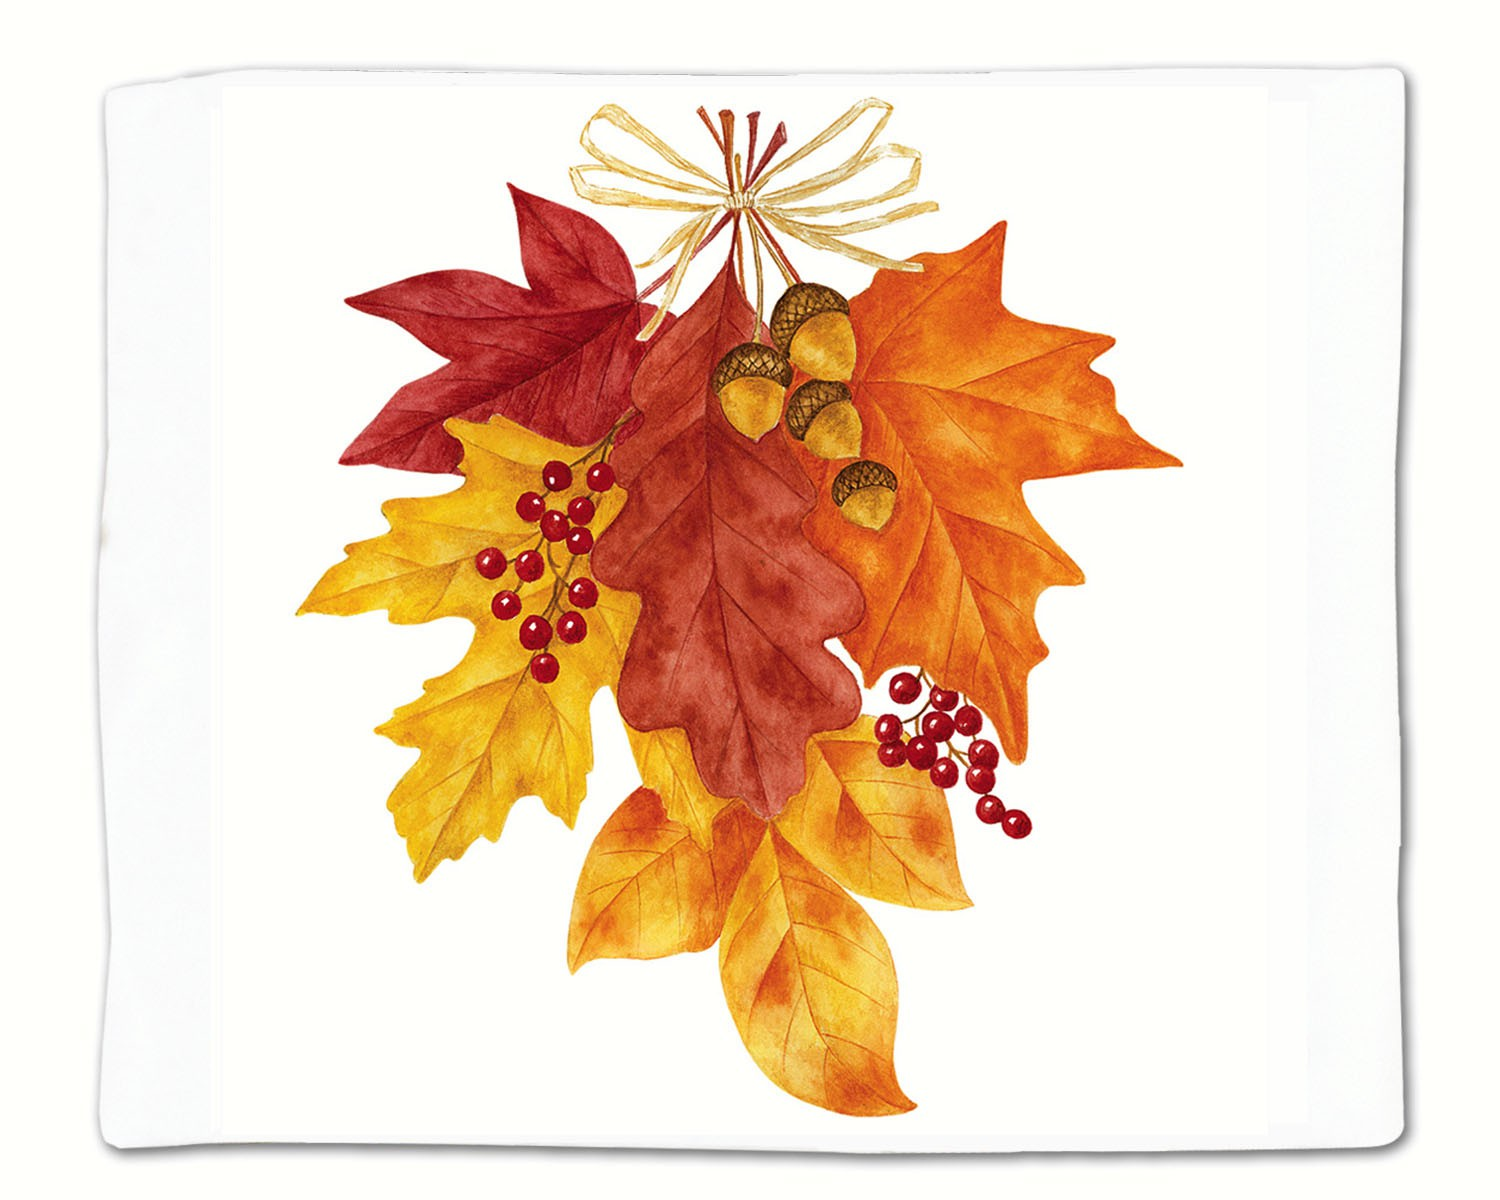 Autumn Leaves Single Flour Sack Towel